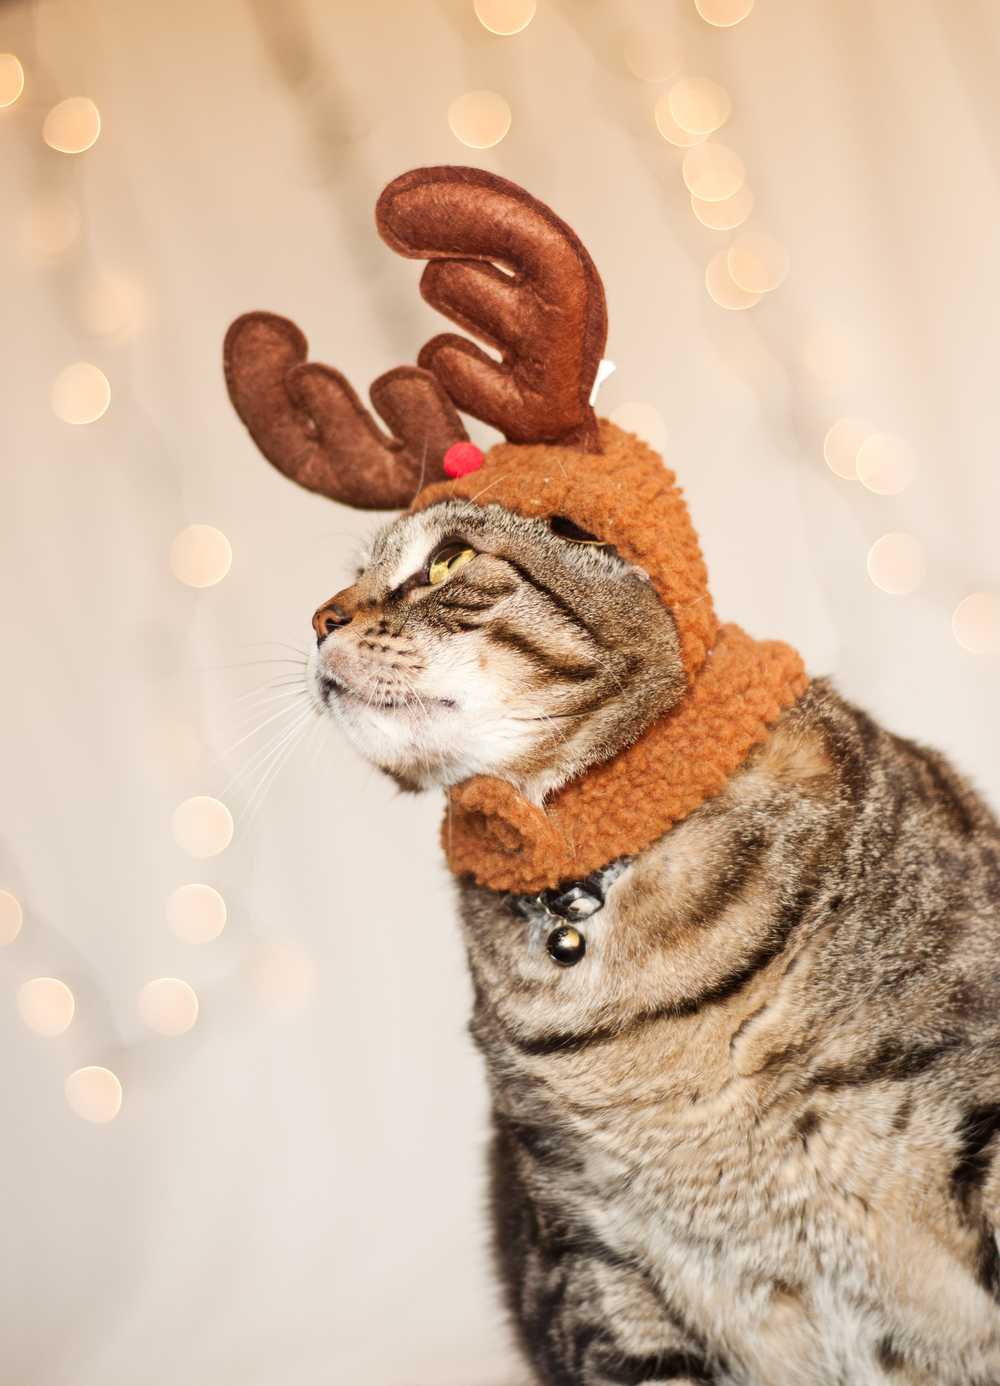 pet-photography-studio-natural-light-lifestyle-cat-reindeer-holiday-long-island-photographer-digital.jpg